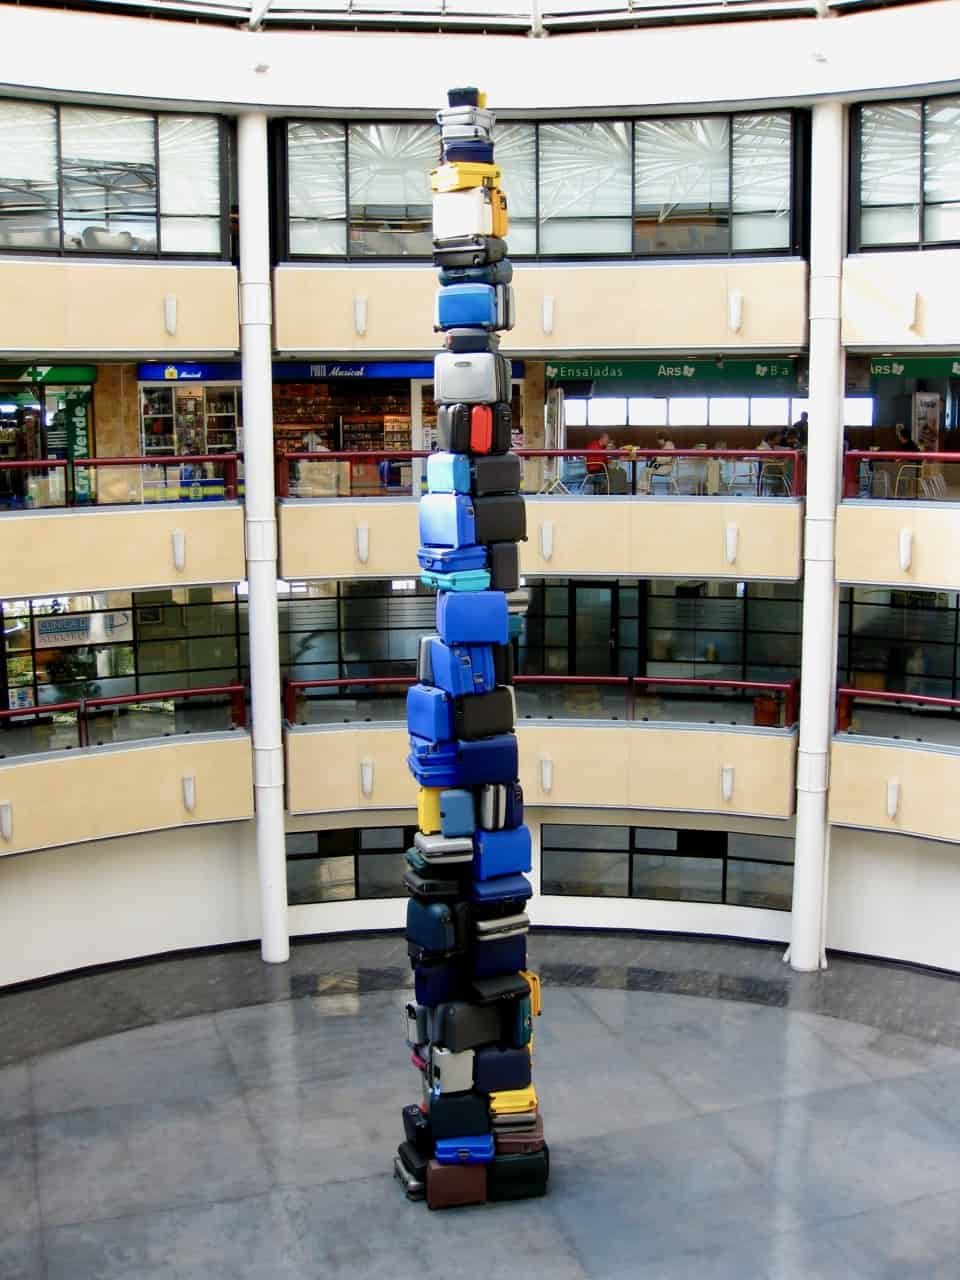 tower-of-bags-santiago-airport-photo